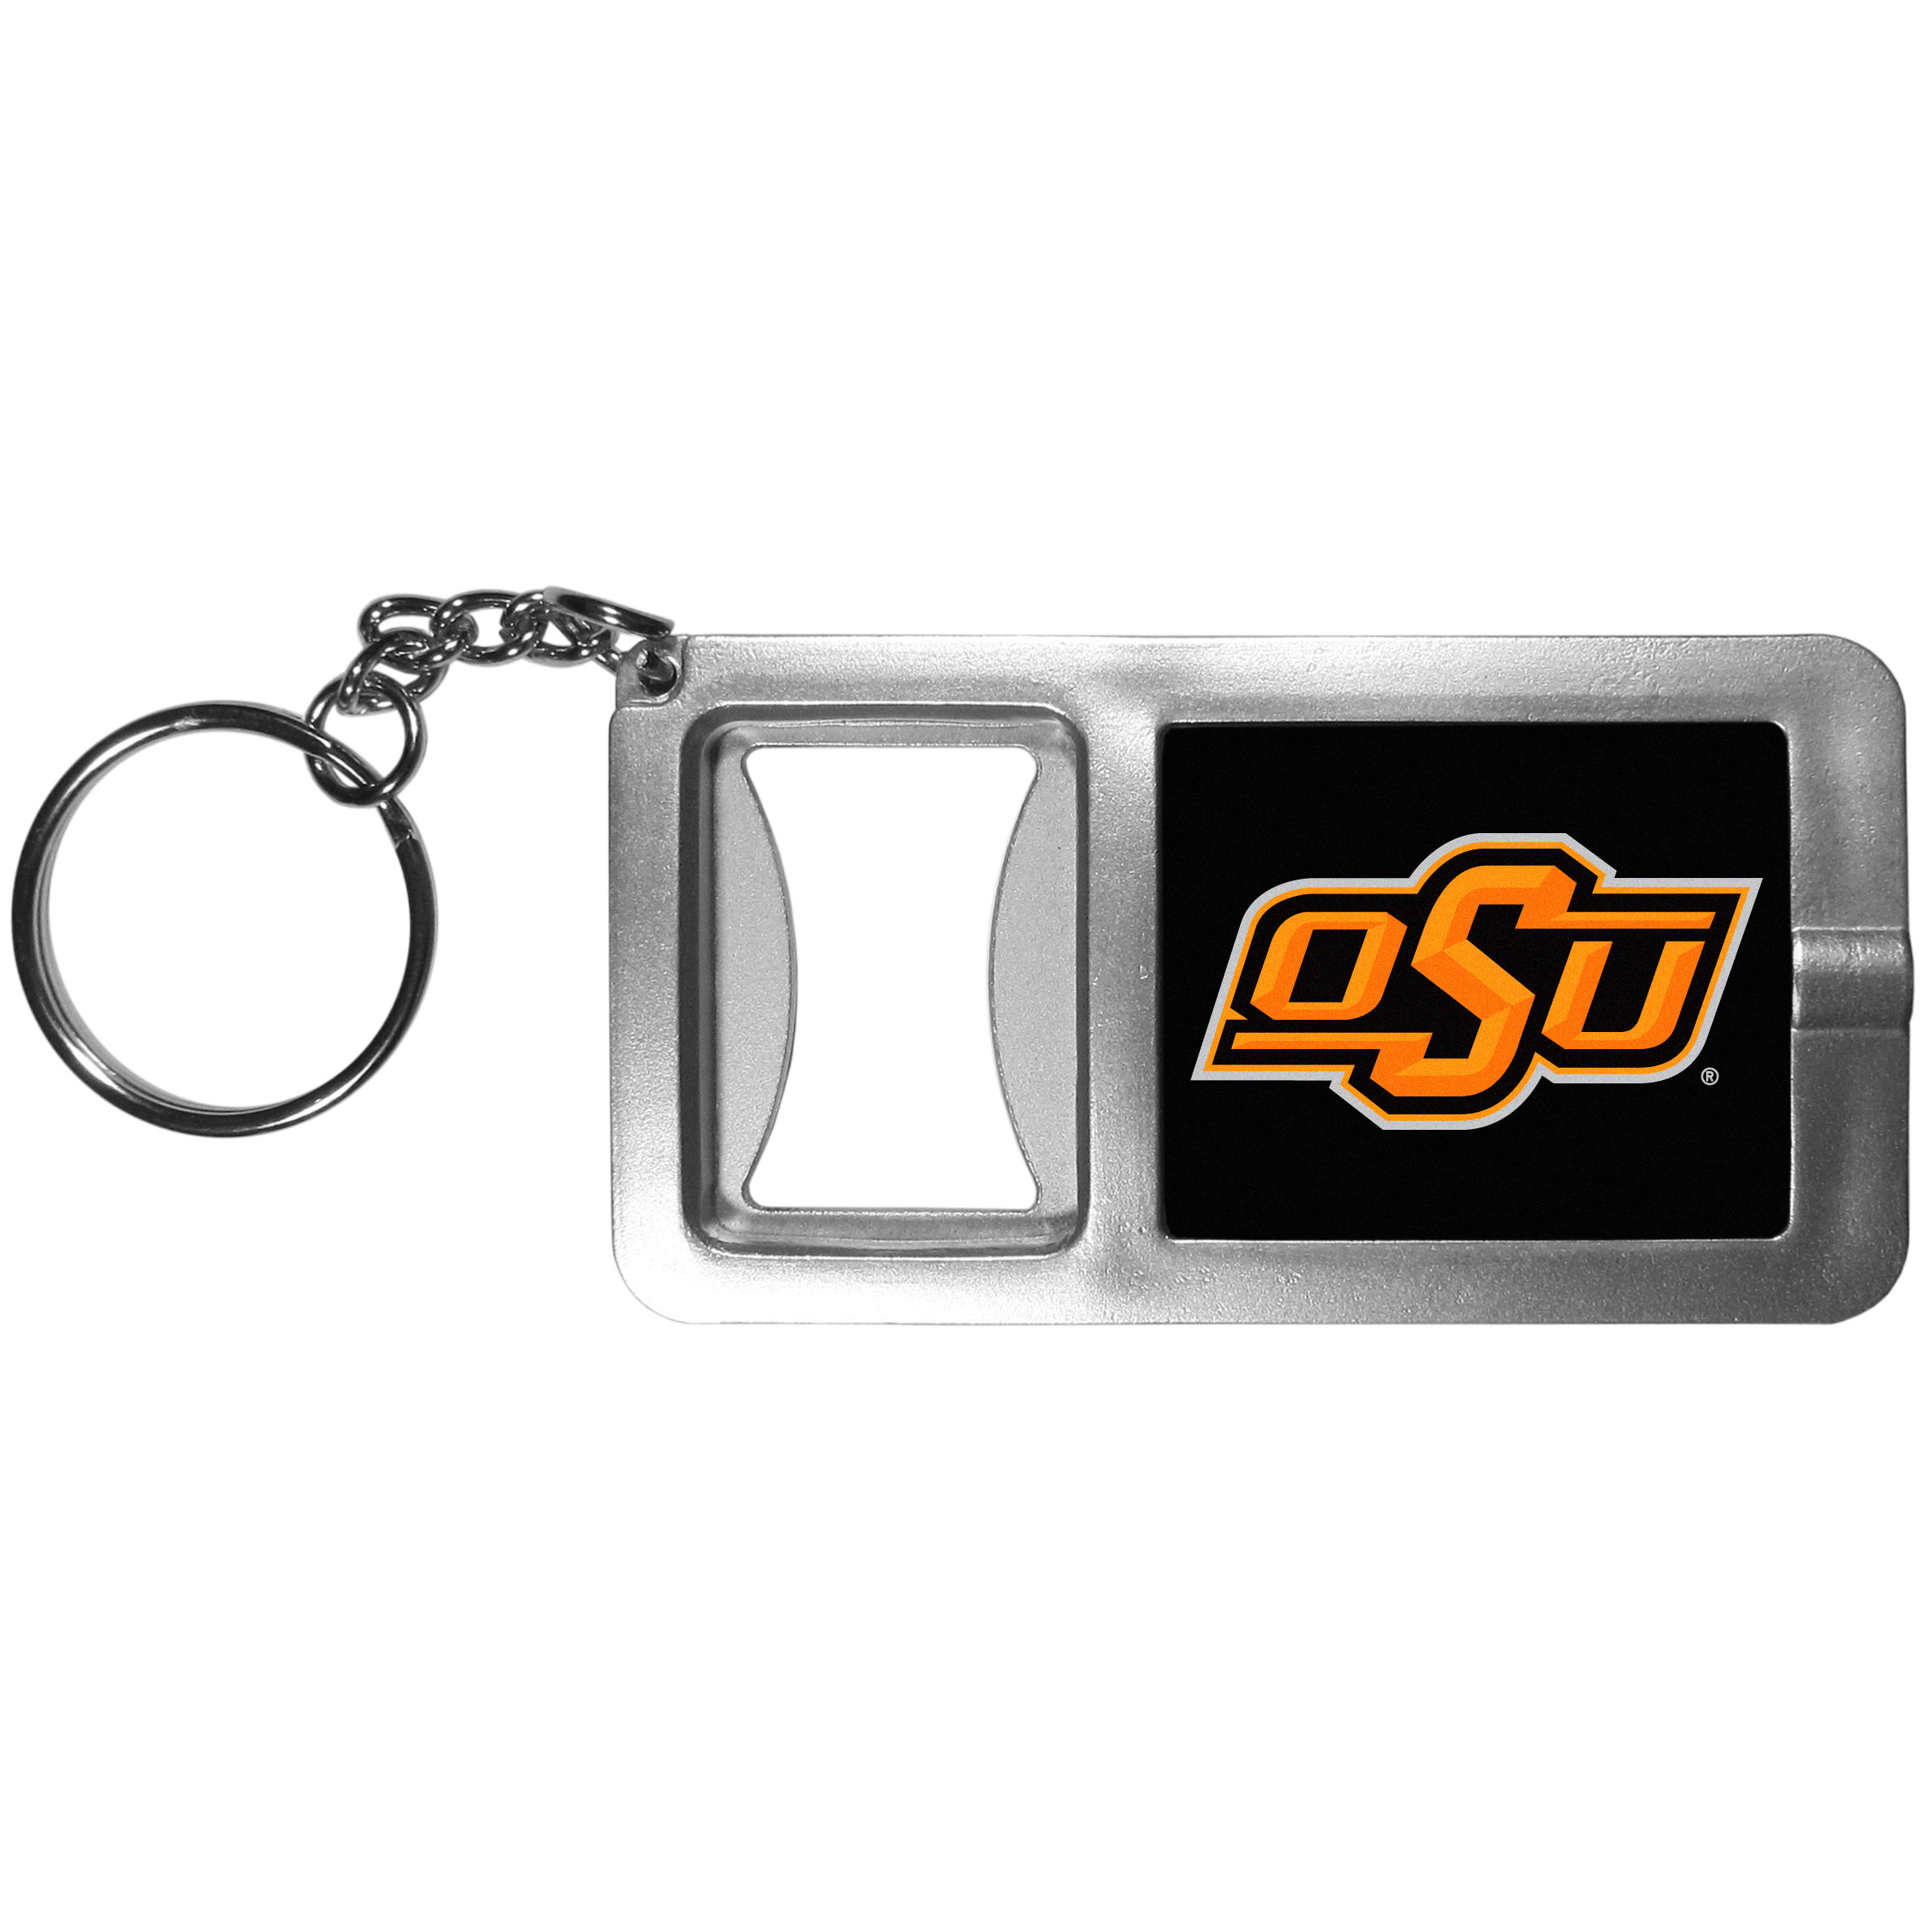 Oklahoma St. Cowboys Flashlight Key Chain with Bottle Opener - Never be without light with our Oklahoma St. Cowboys flashlight keychain that features a handy bottle opener feature. This versatile key chain is perfect for camping and travel and is a great way to show off your team pride!